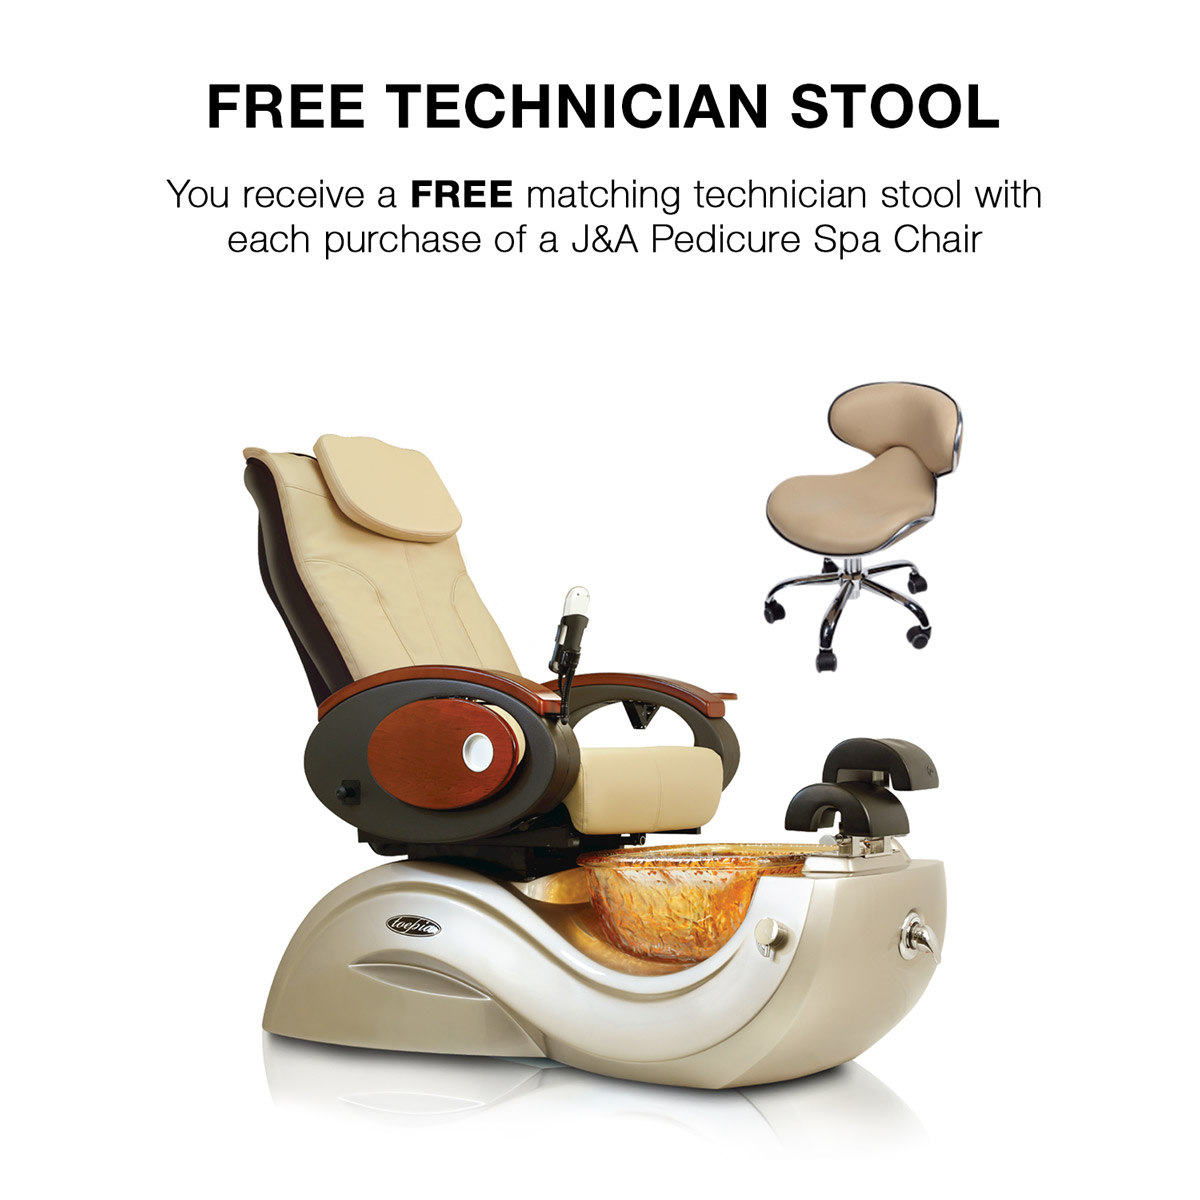 Toepia GX Pipeless Pedicure Spa Chair w/Vented Option alternative product image 3